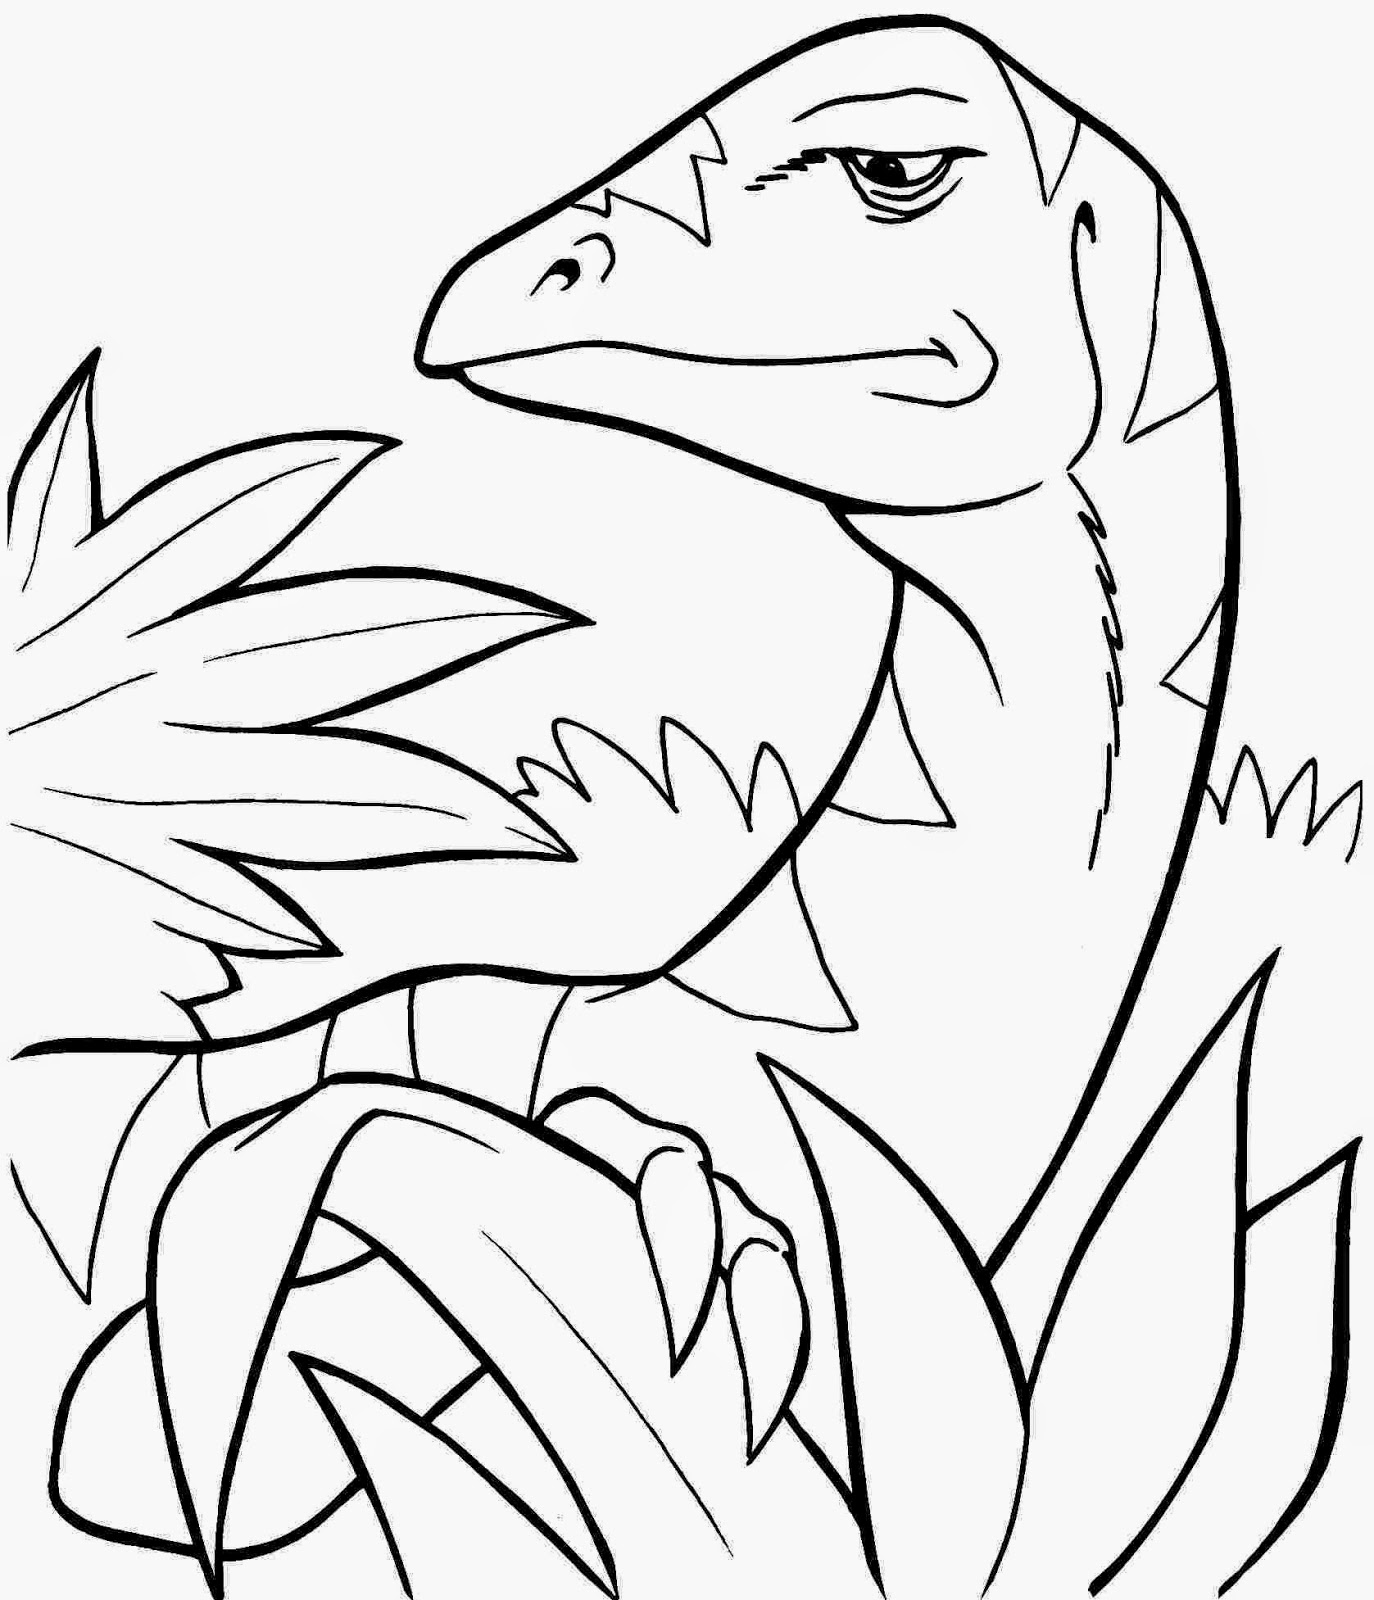 dinosaurs coloring pages printable the good dinosaur coloring page dinosaur coloring pages pages dinosaurs printable coloring